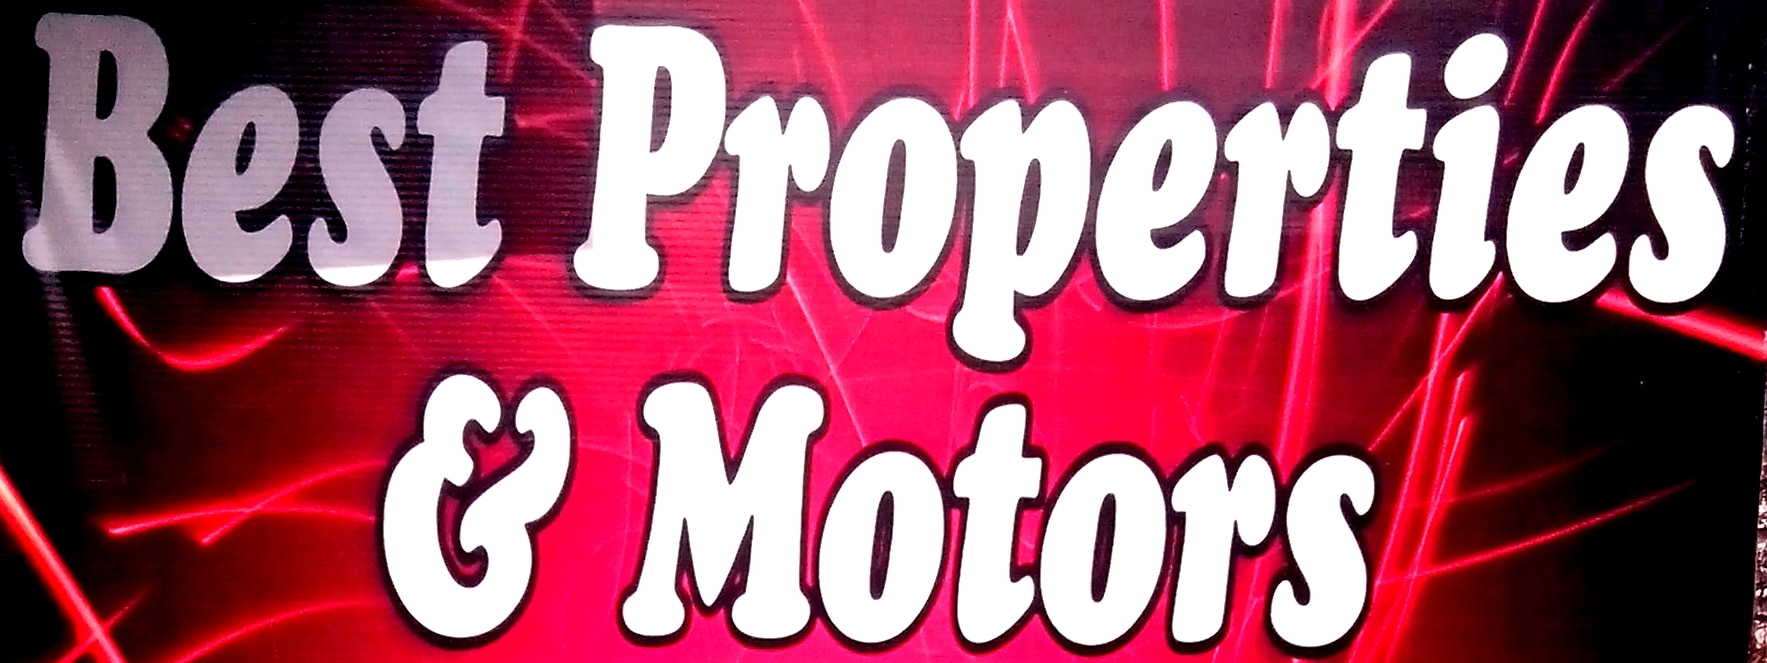 Best properties & motors